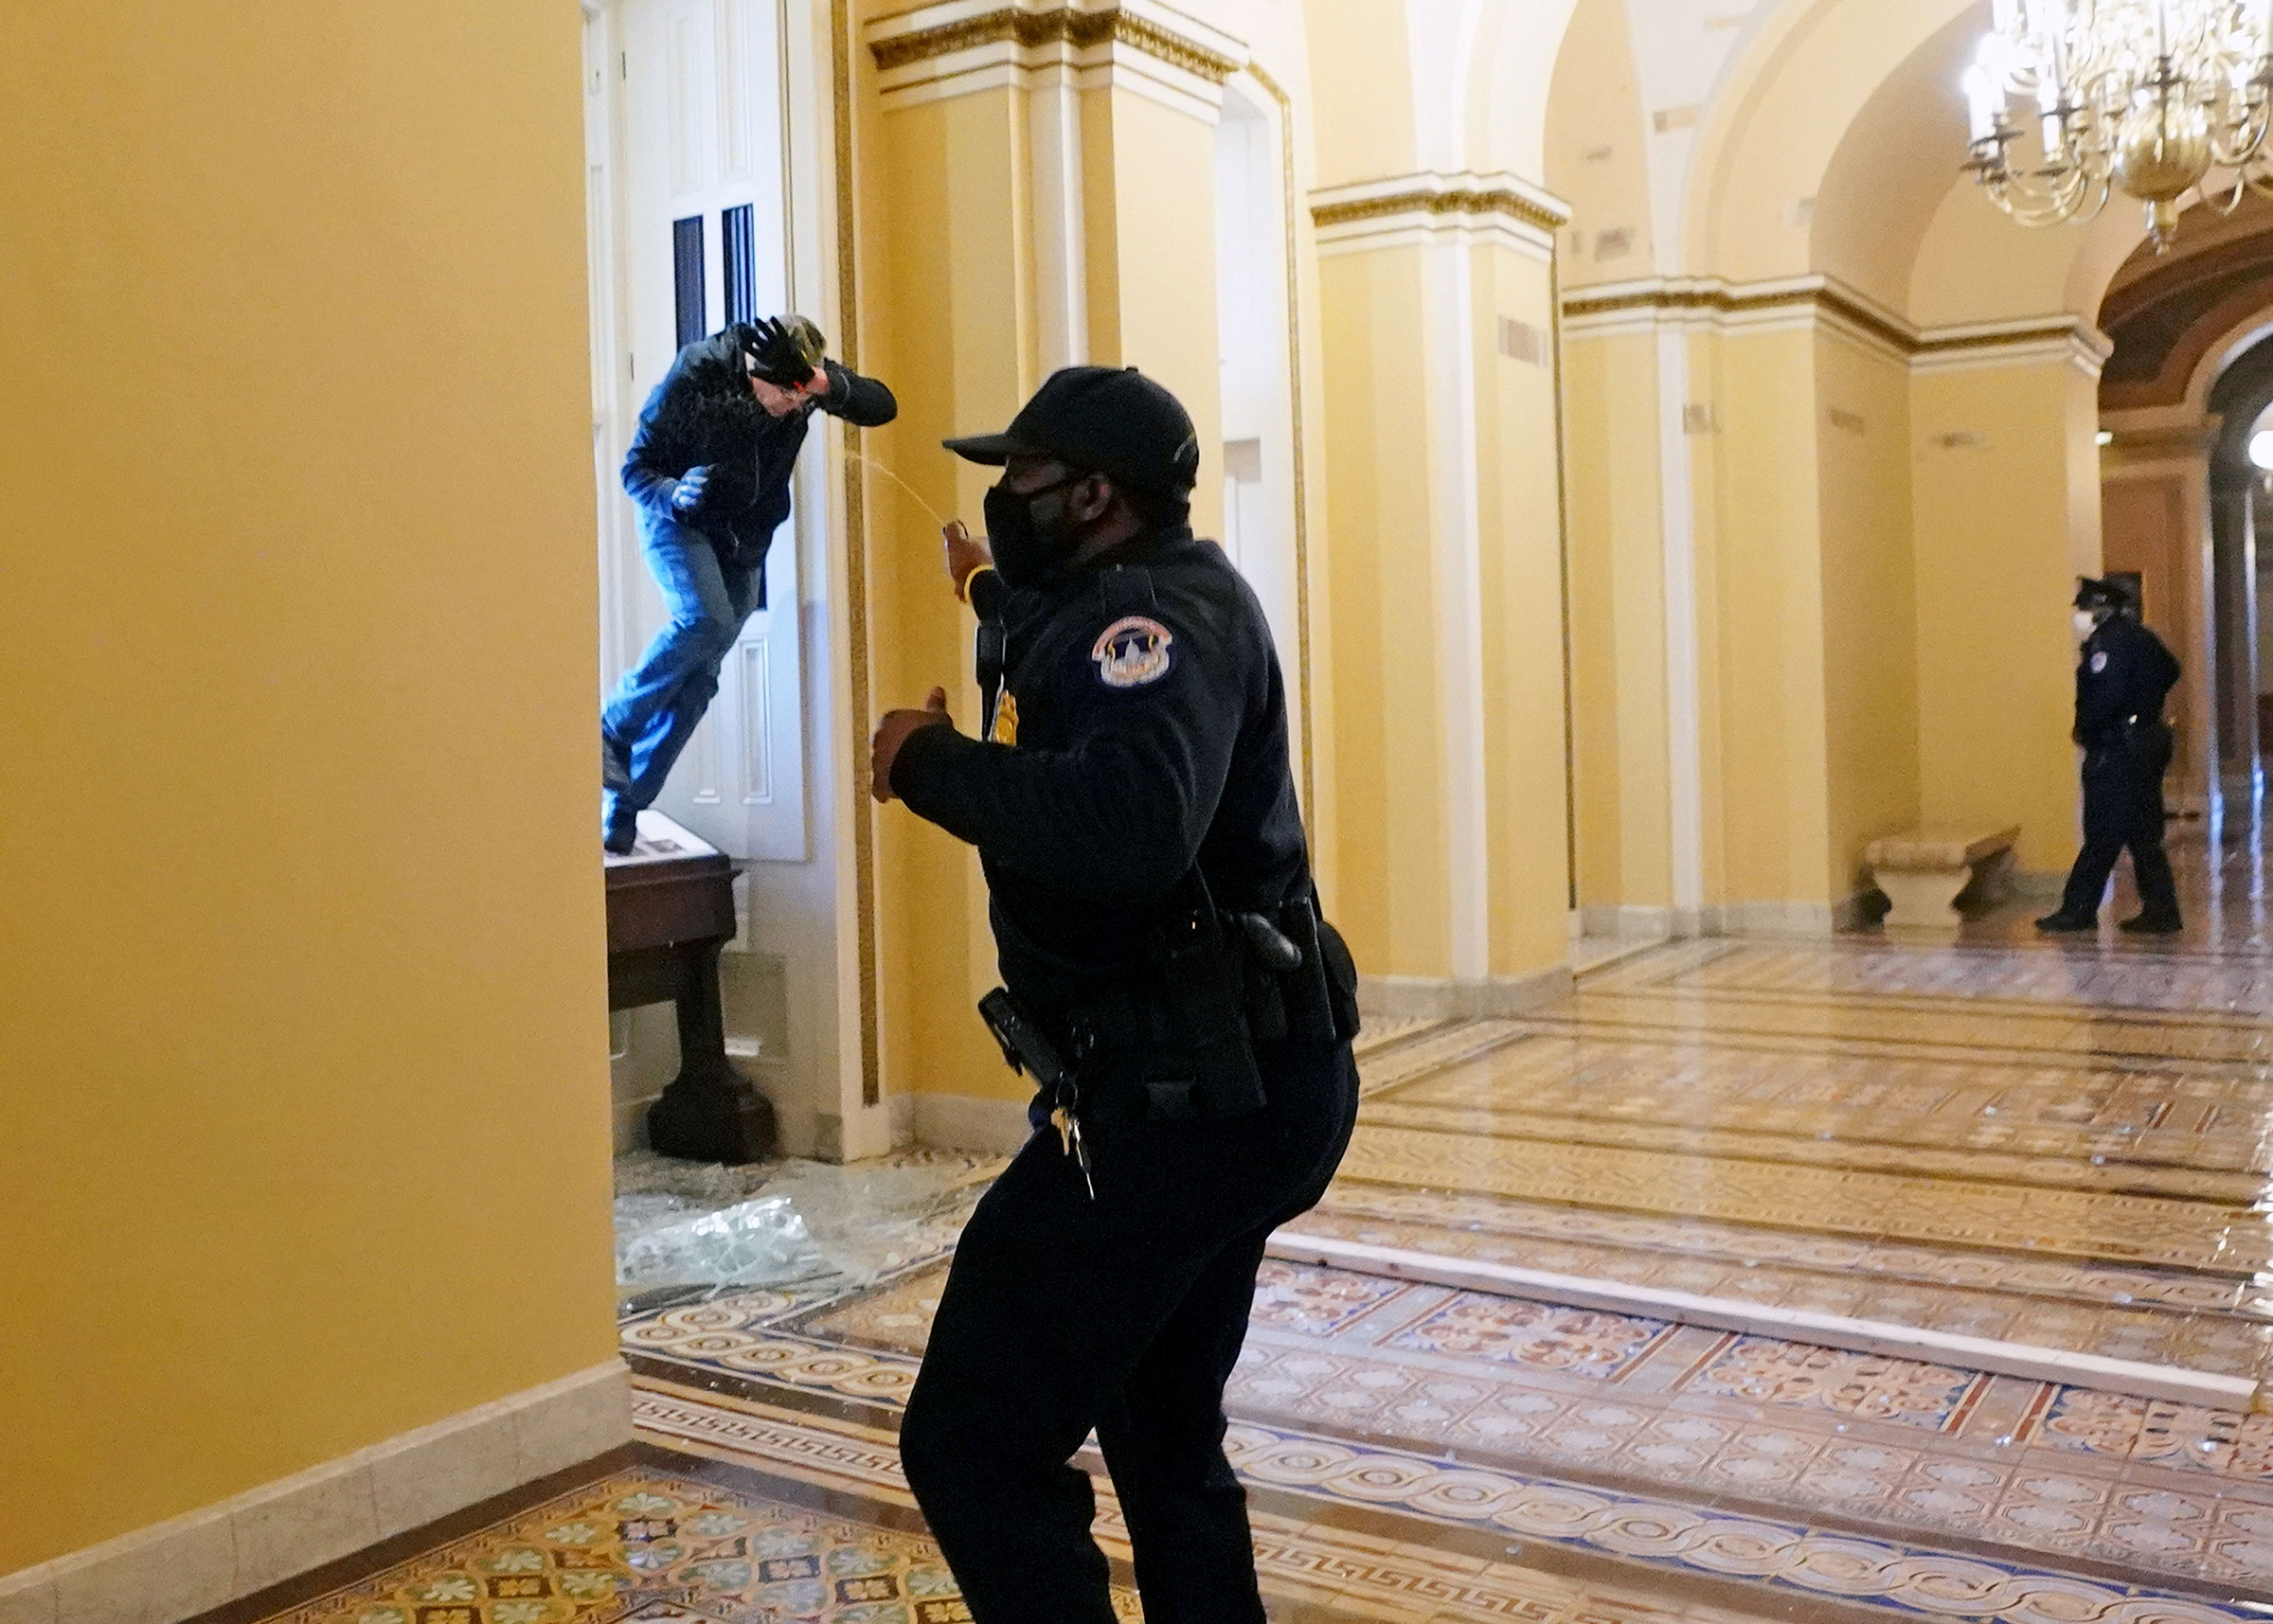 A Capitol police officer confronts a Trump supporter scrambling into the Capitol through a smashed window.